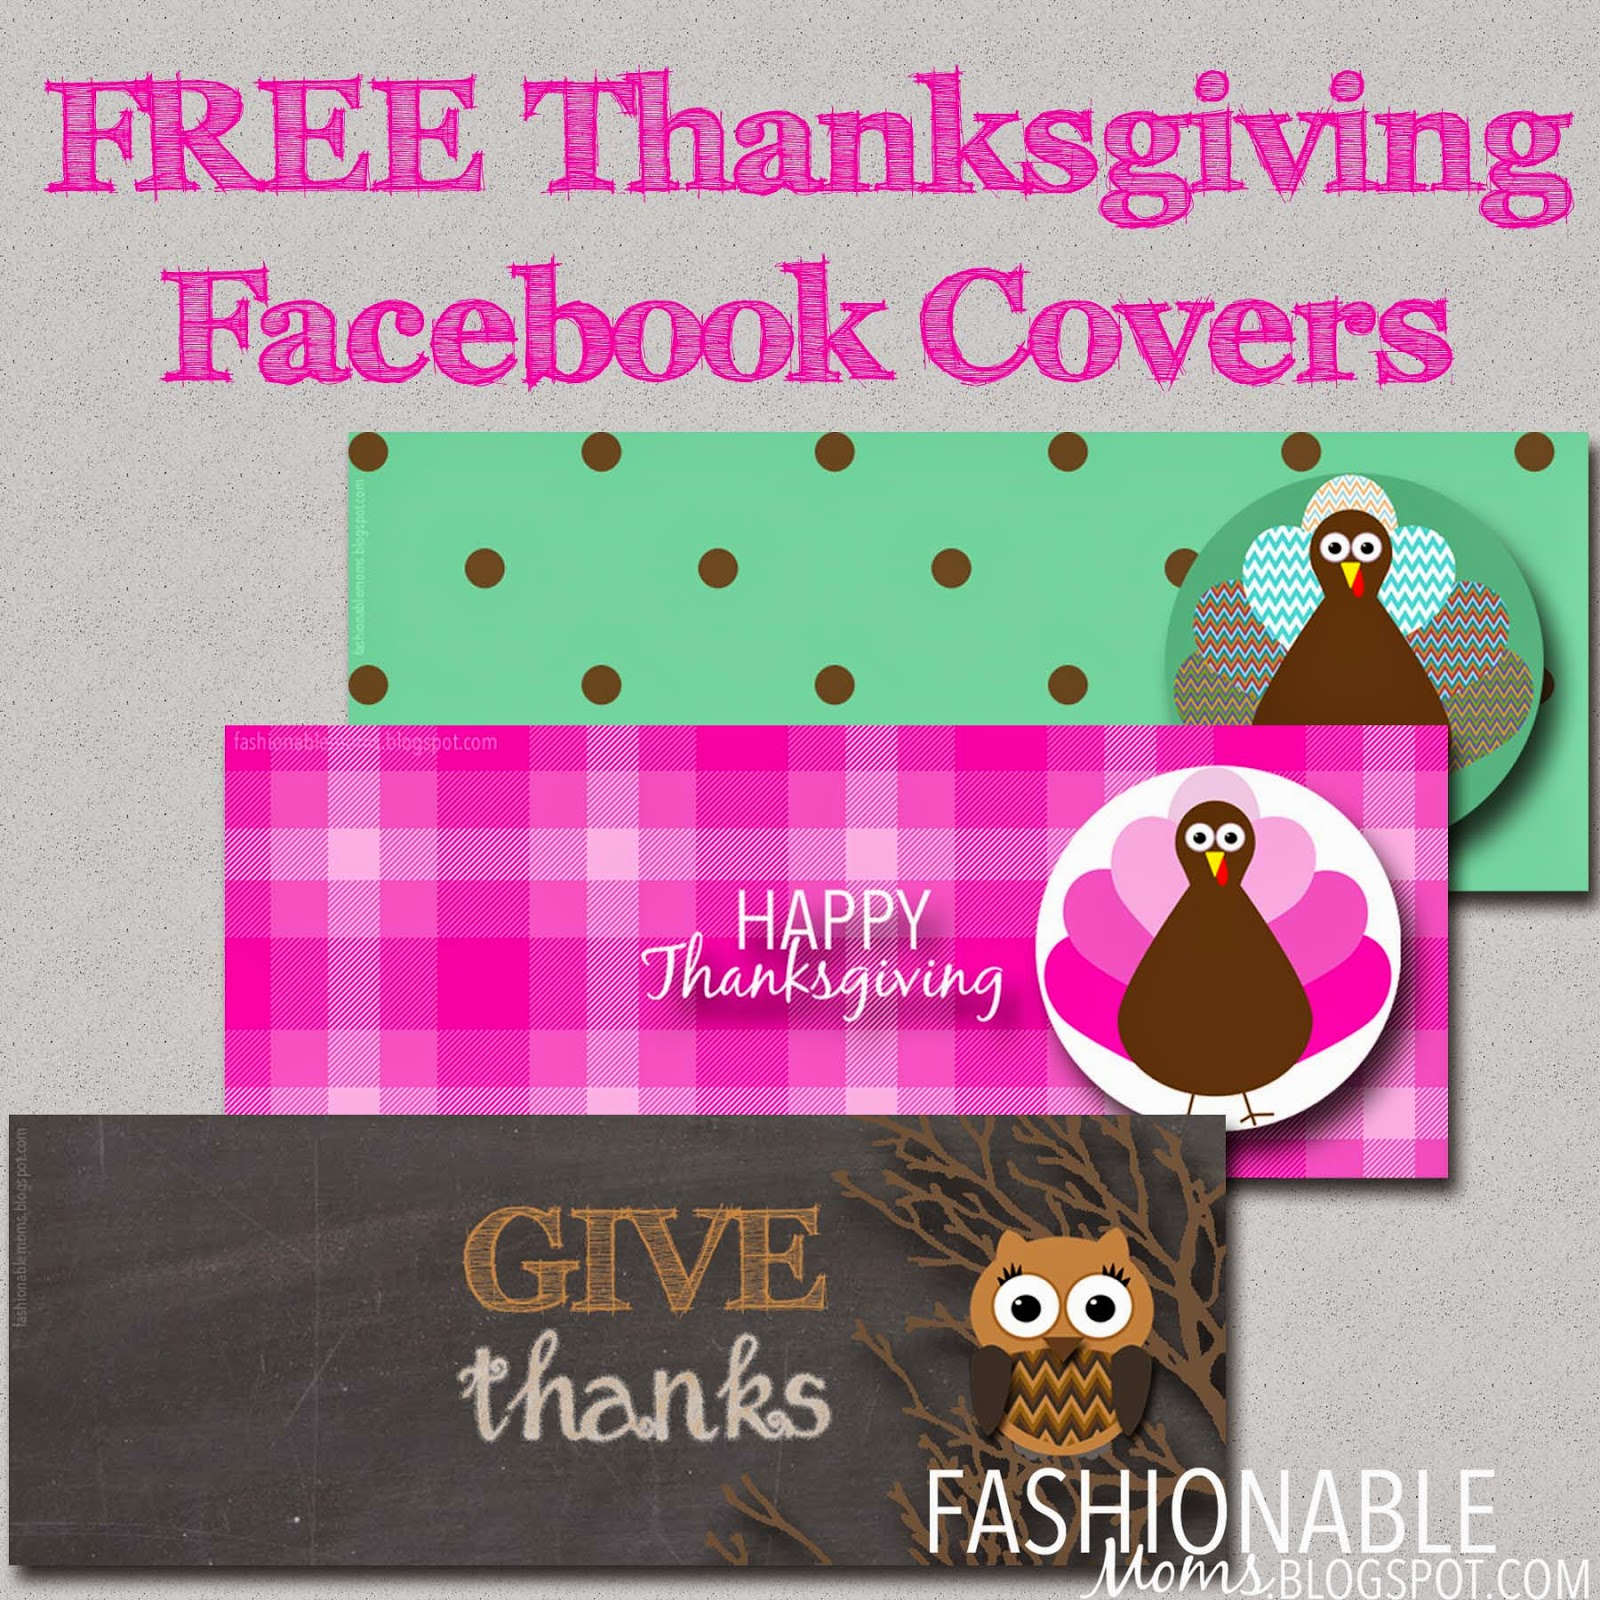 Thanksgiving turkey clipart cover photo for facebook transparent Thanksgiving facebook covers, Search and Facebook on Pinterest transparent